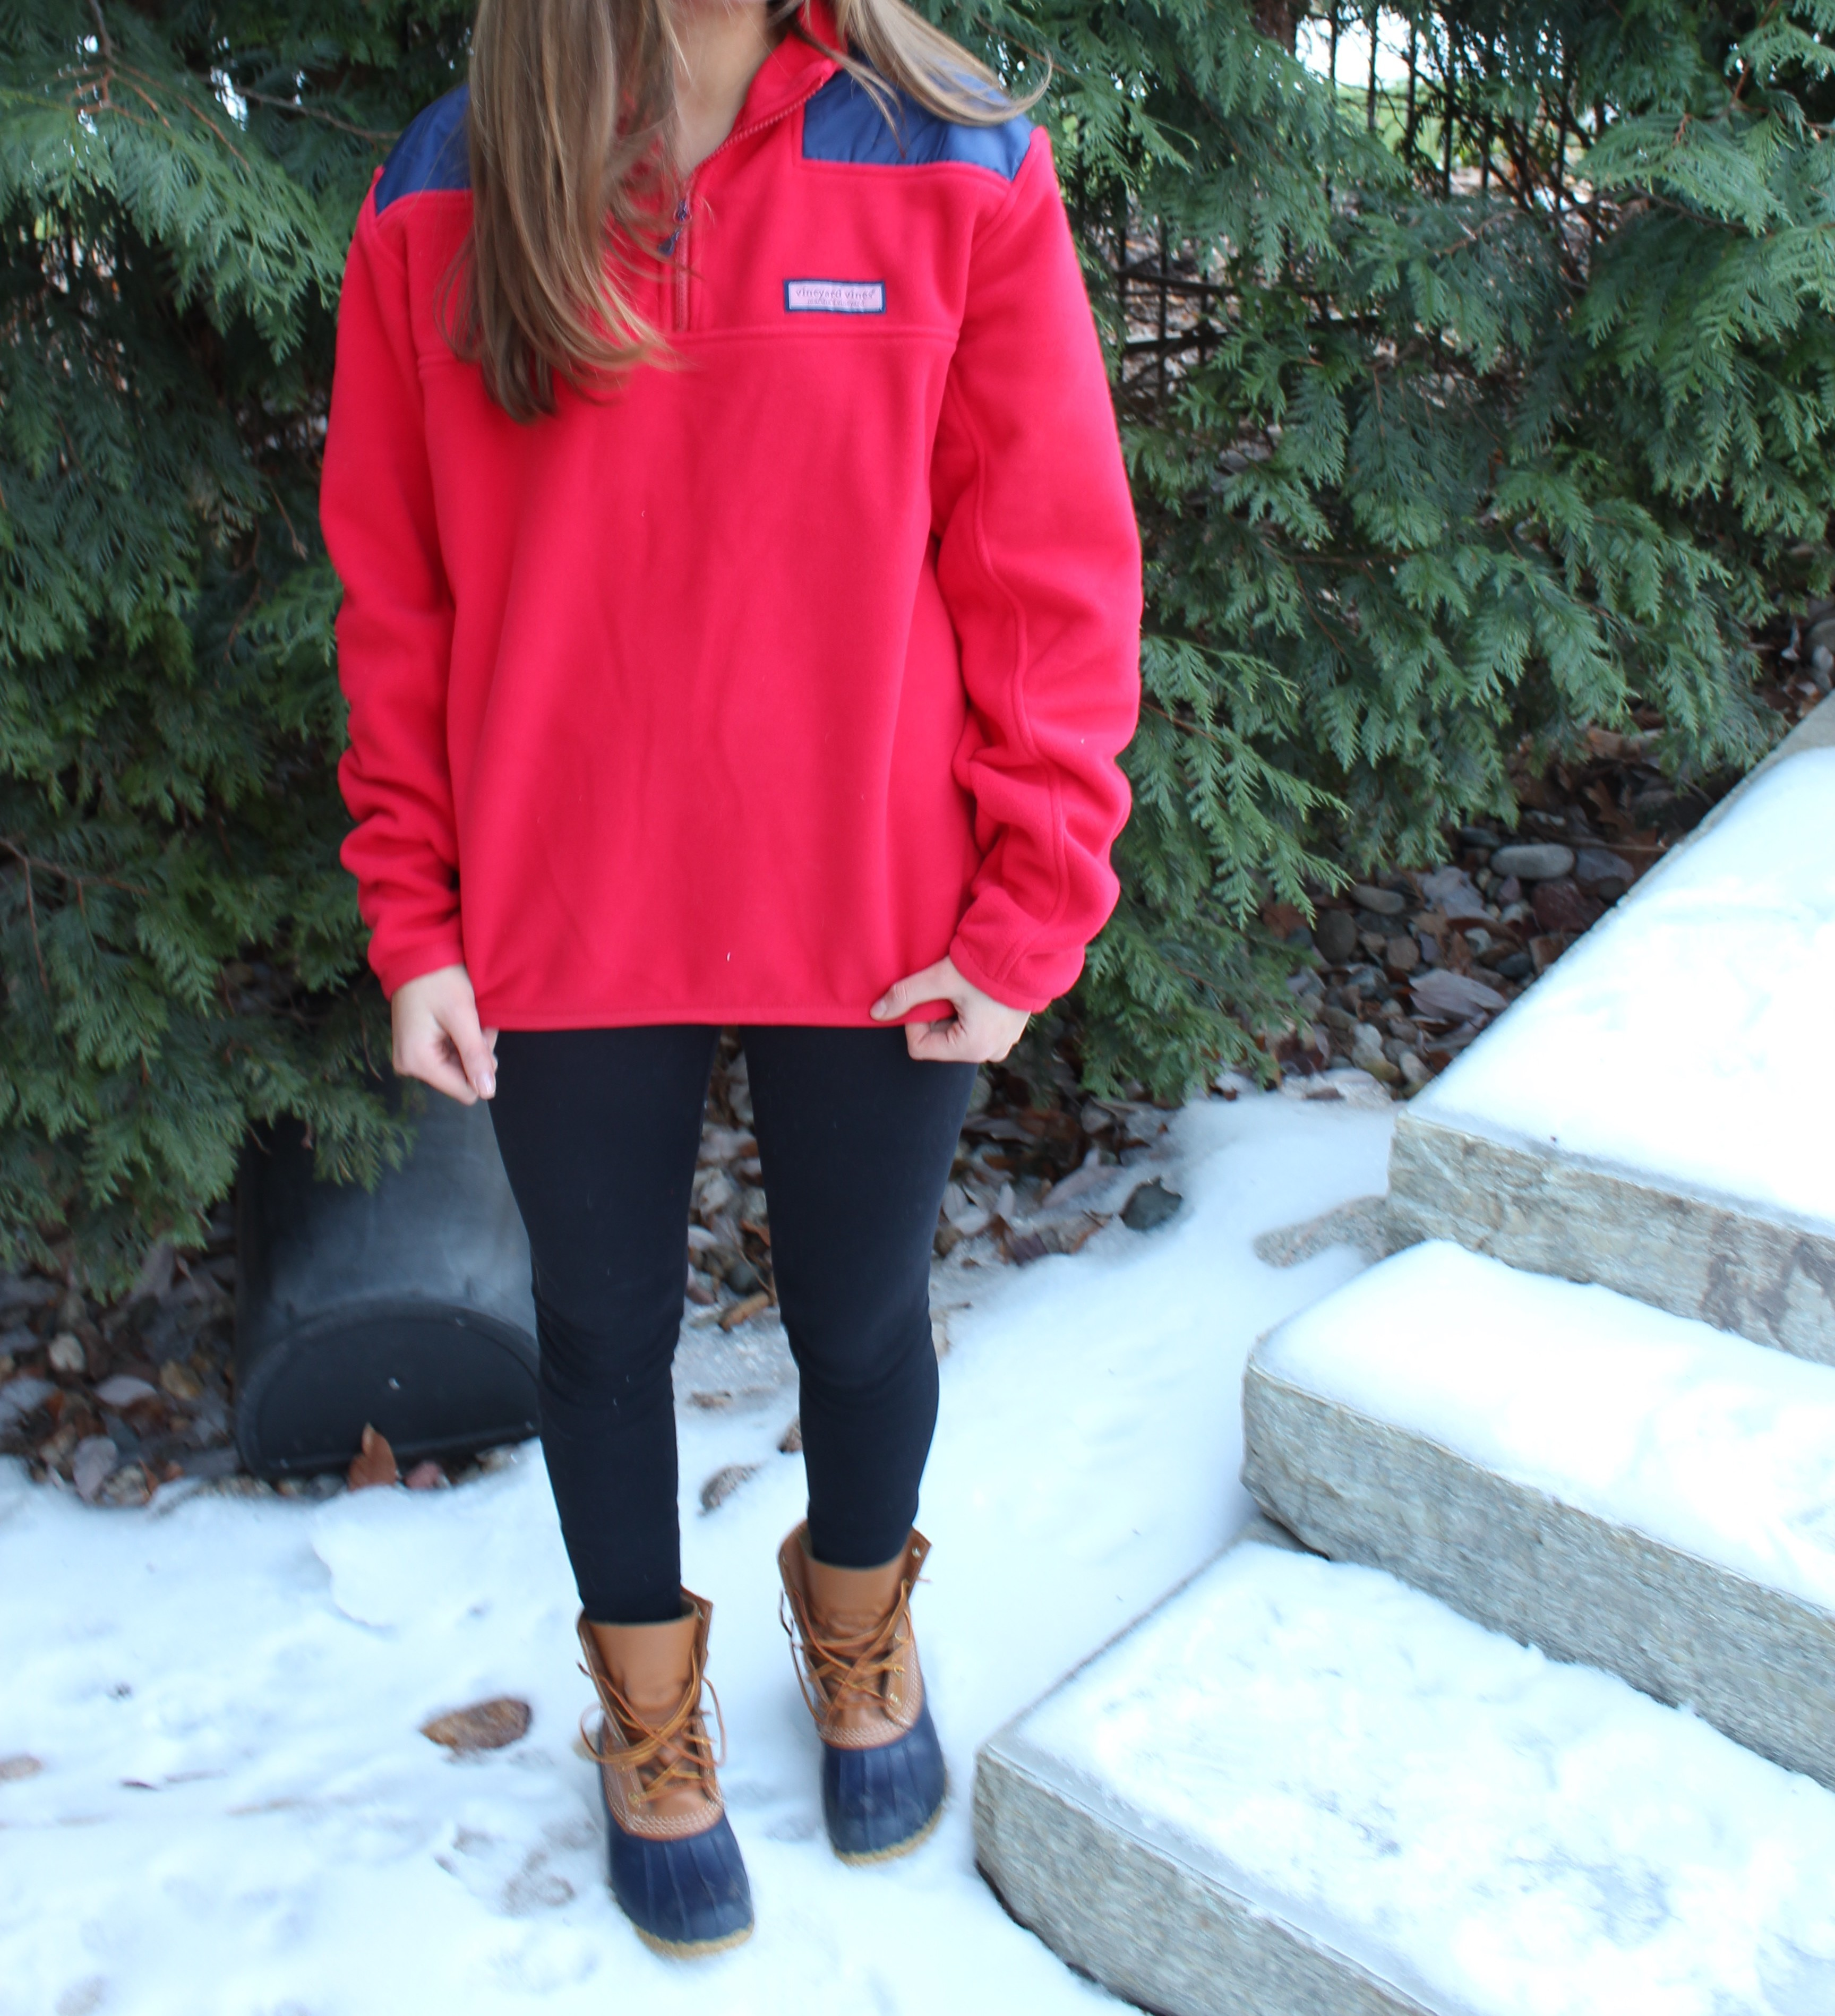 Cold Weather Means Oversized Shep Shirts, Duck Boots, & Mittens   OOTD by Lauren Lindmark on Daily Dose of Charm